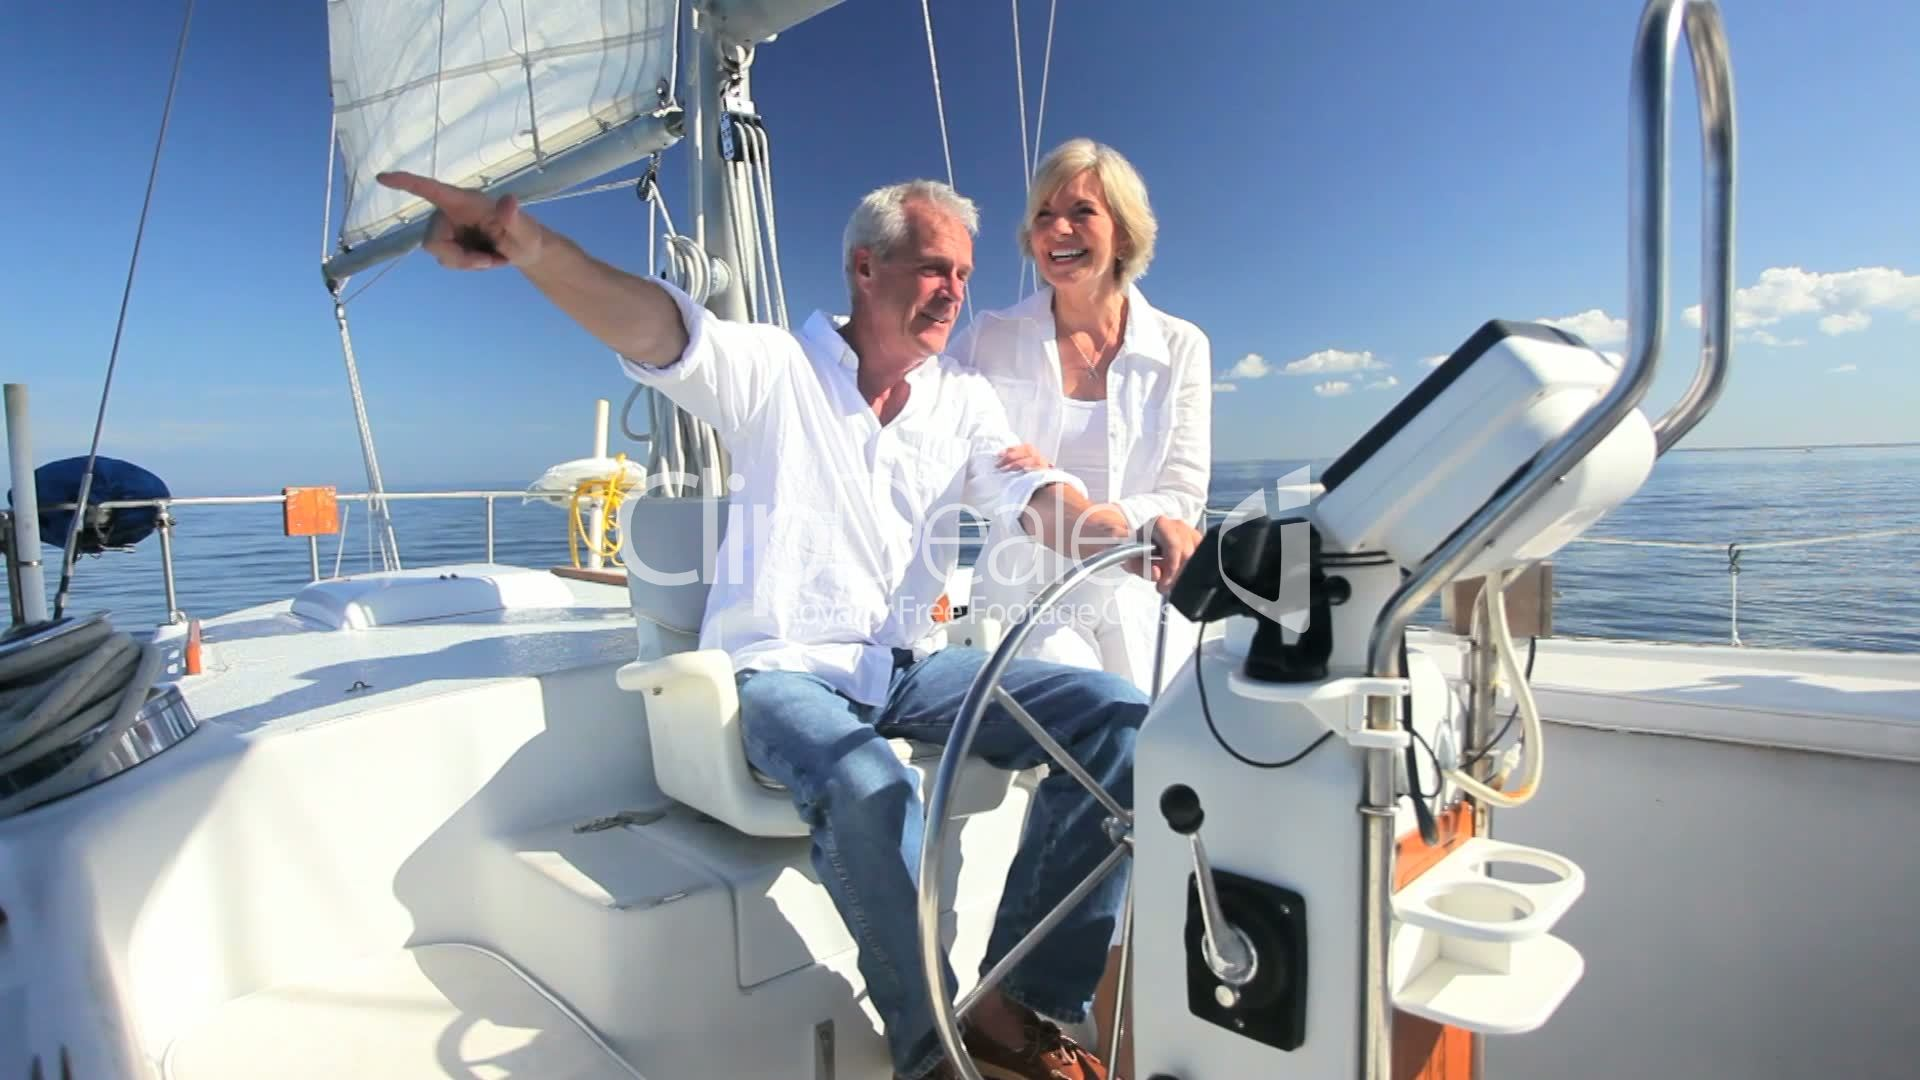 Retirement Outdoor Sailing Lifestyle Royalty Free Video